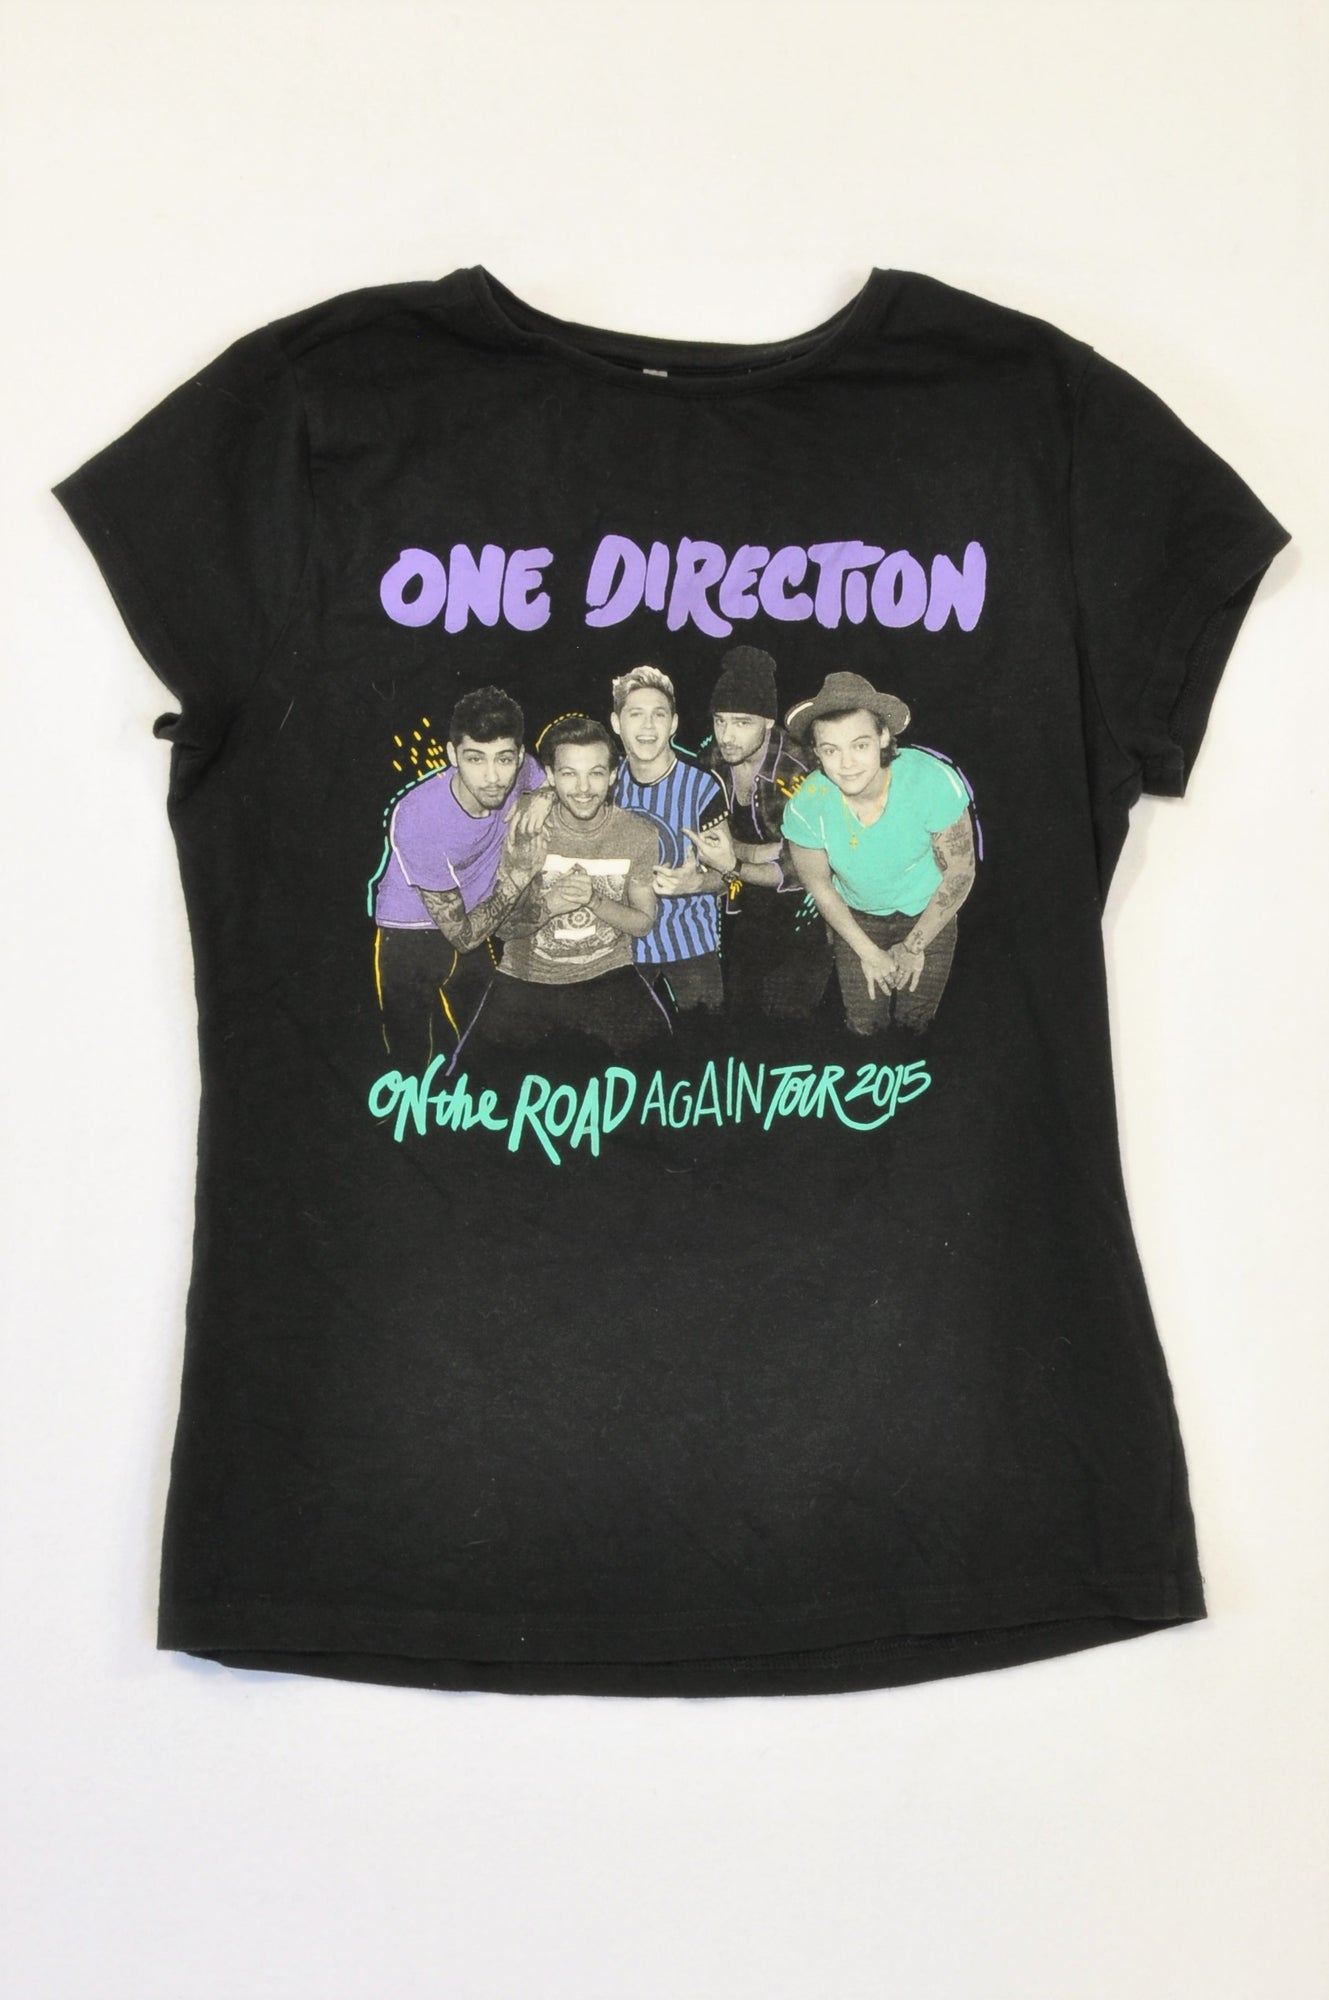 Unbranded Black One Direction T-shirt Unisex 7-8 years